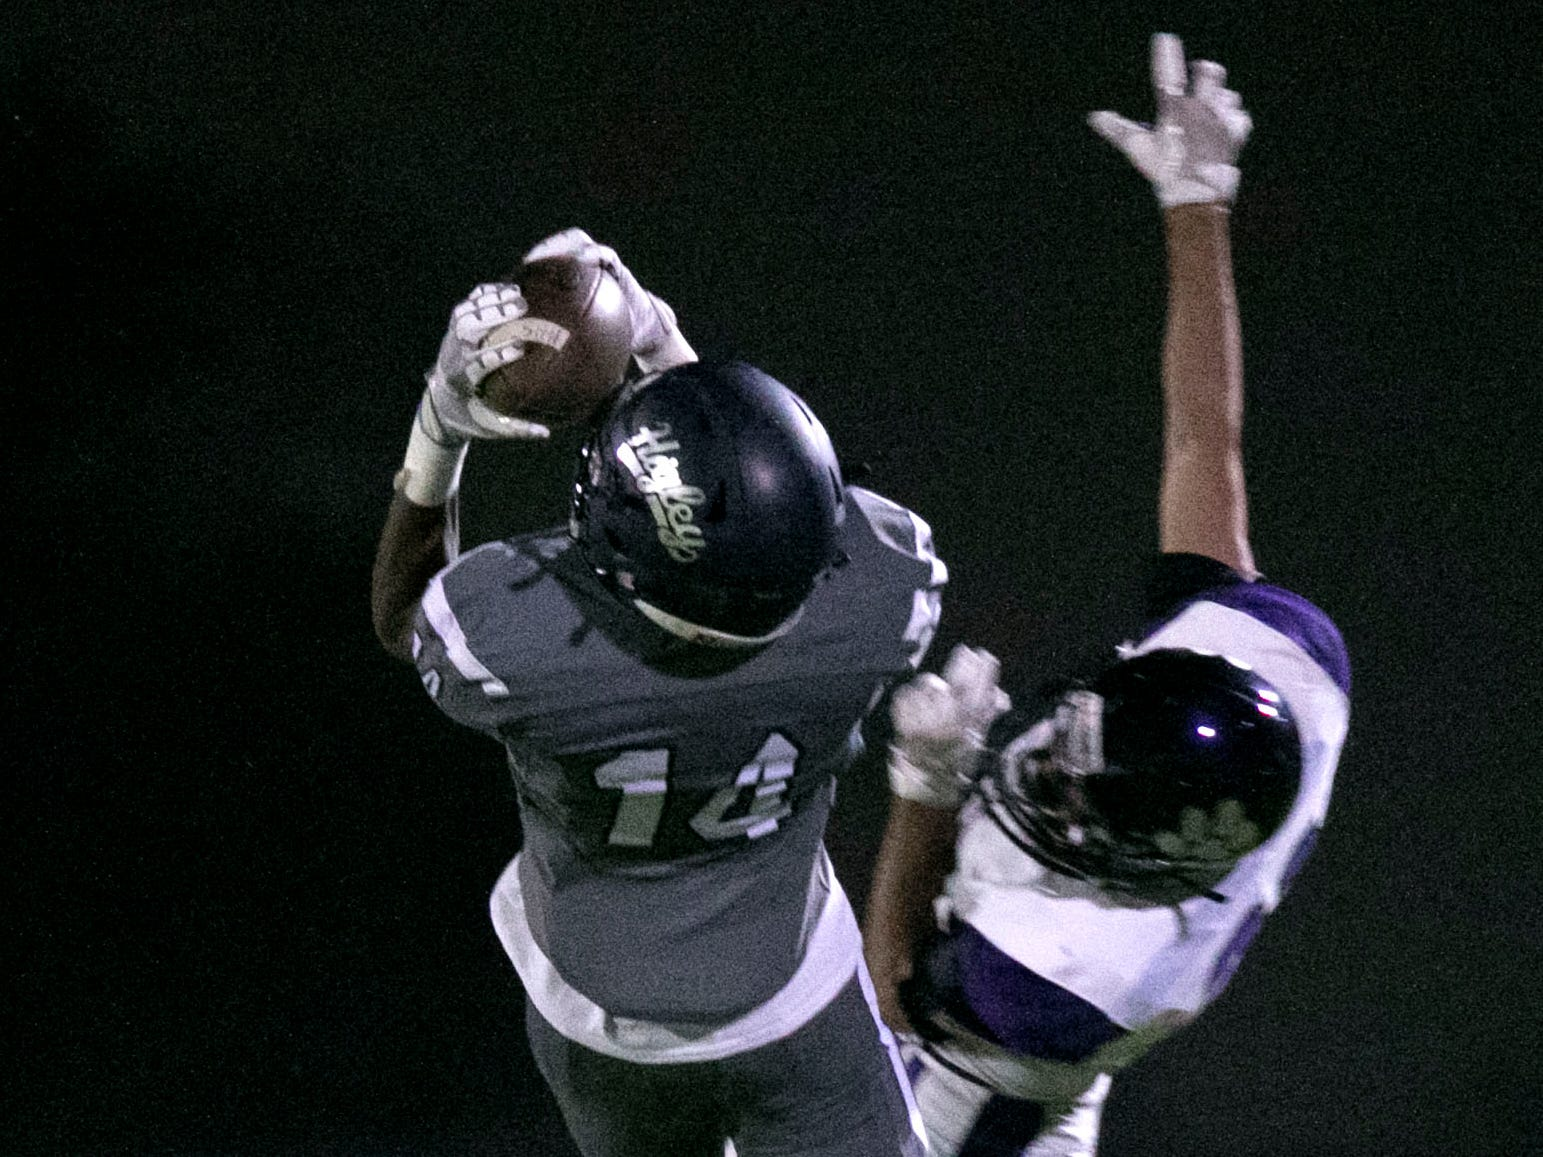 Higley High receiver Logan Mack catches a pass over Millennium High defensive back Nico Montejo during the third quarter of the high school football game at Higley High in Gilbert on Friday evening, September 14, 2018.